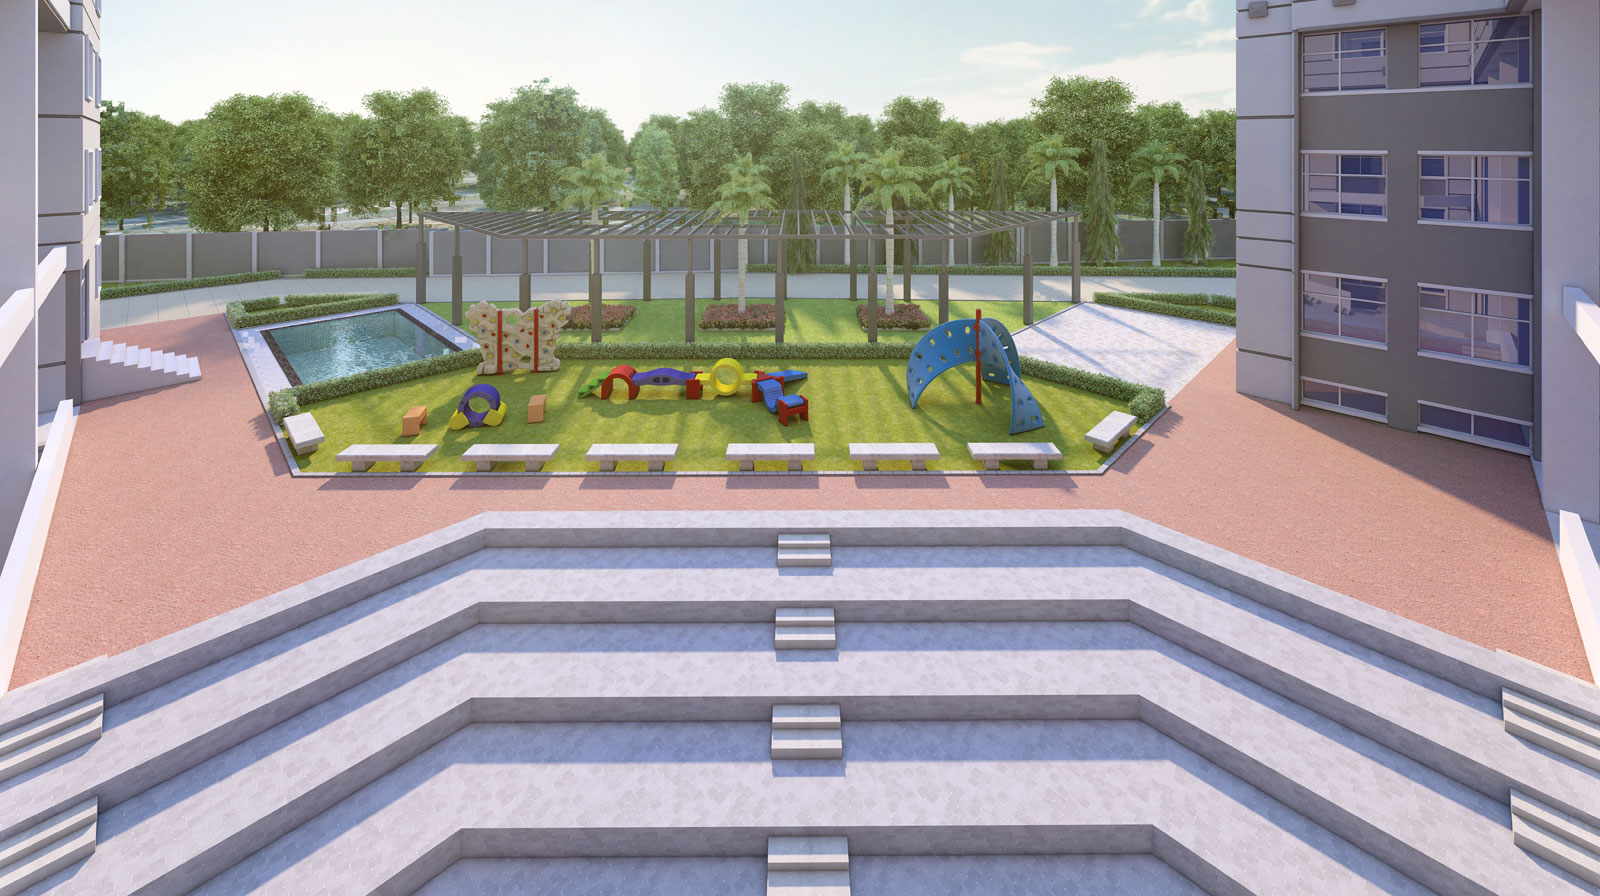 BEST LANDSCAPE ARCHITECTS FOR SCHOOLS IN INDIA